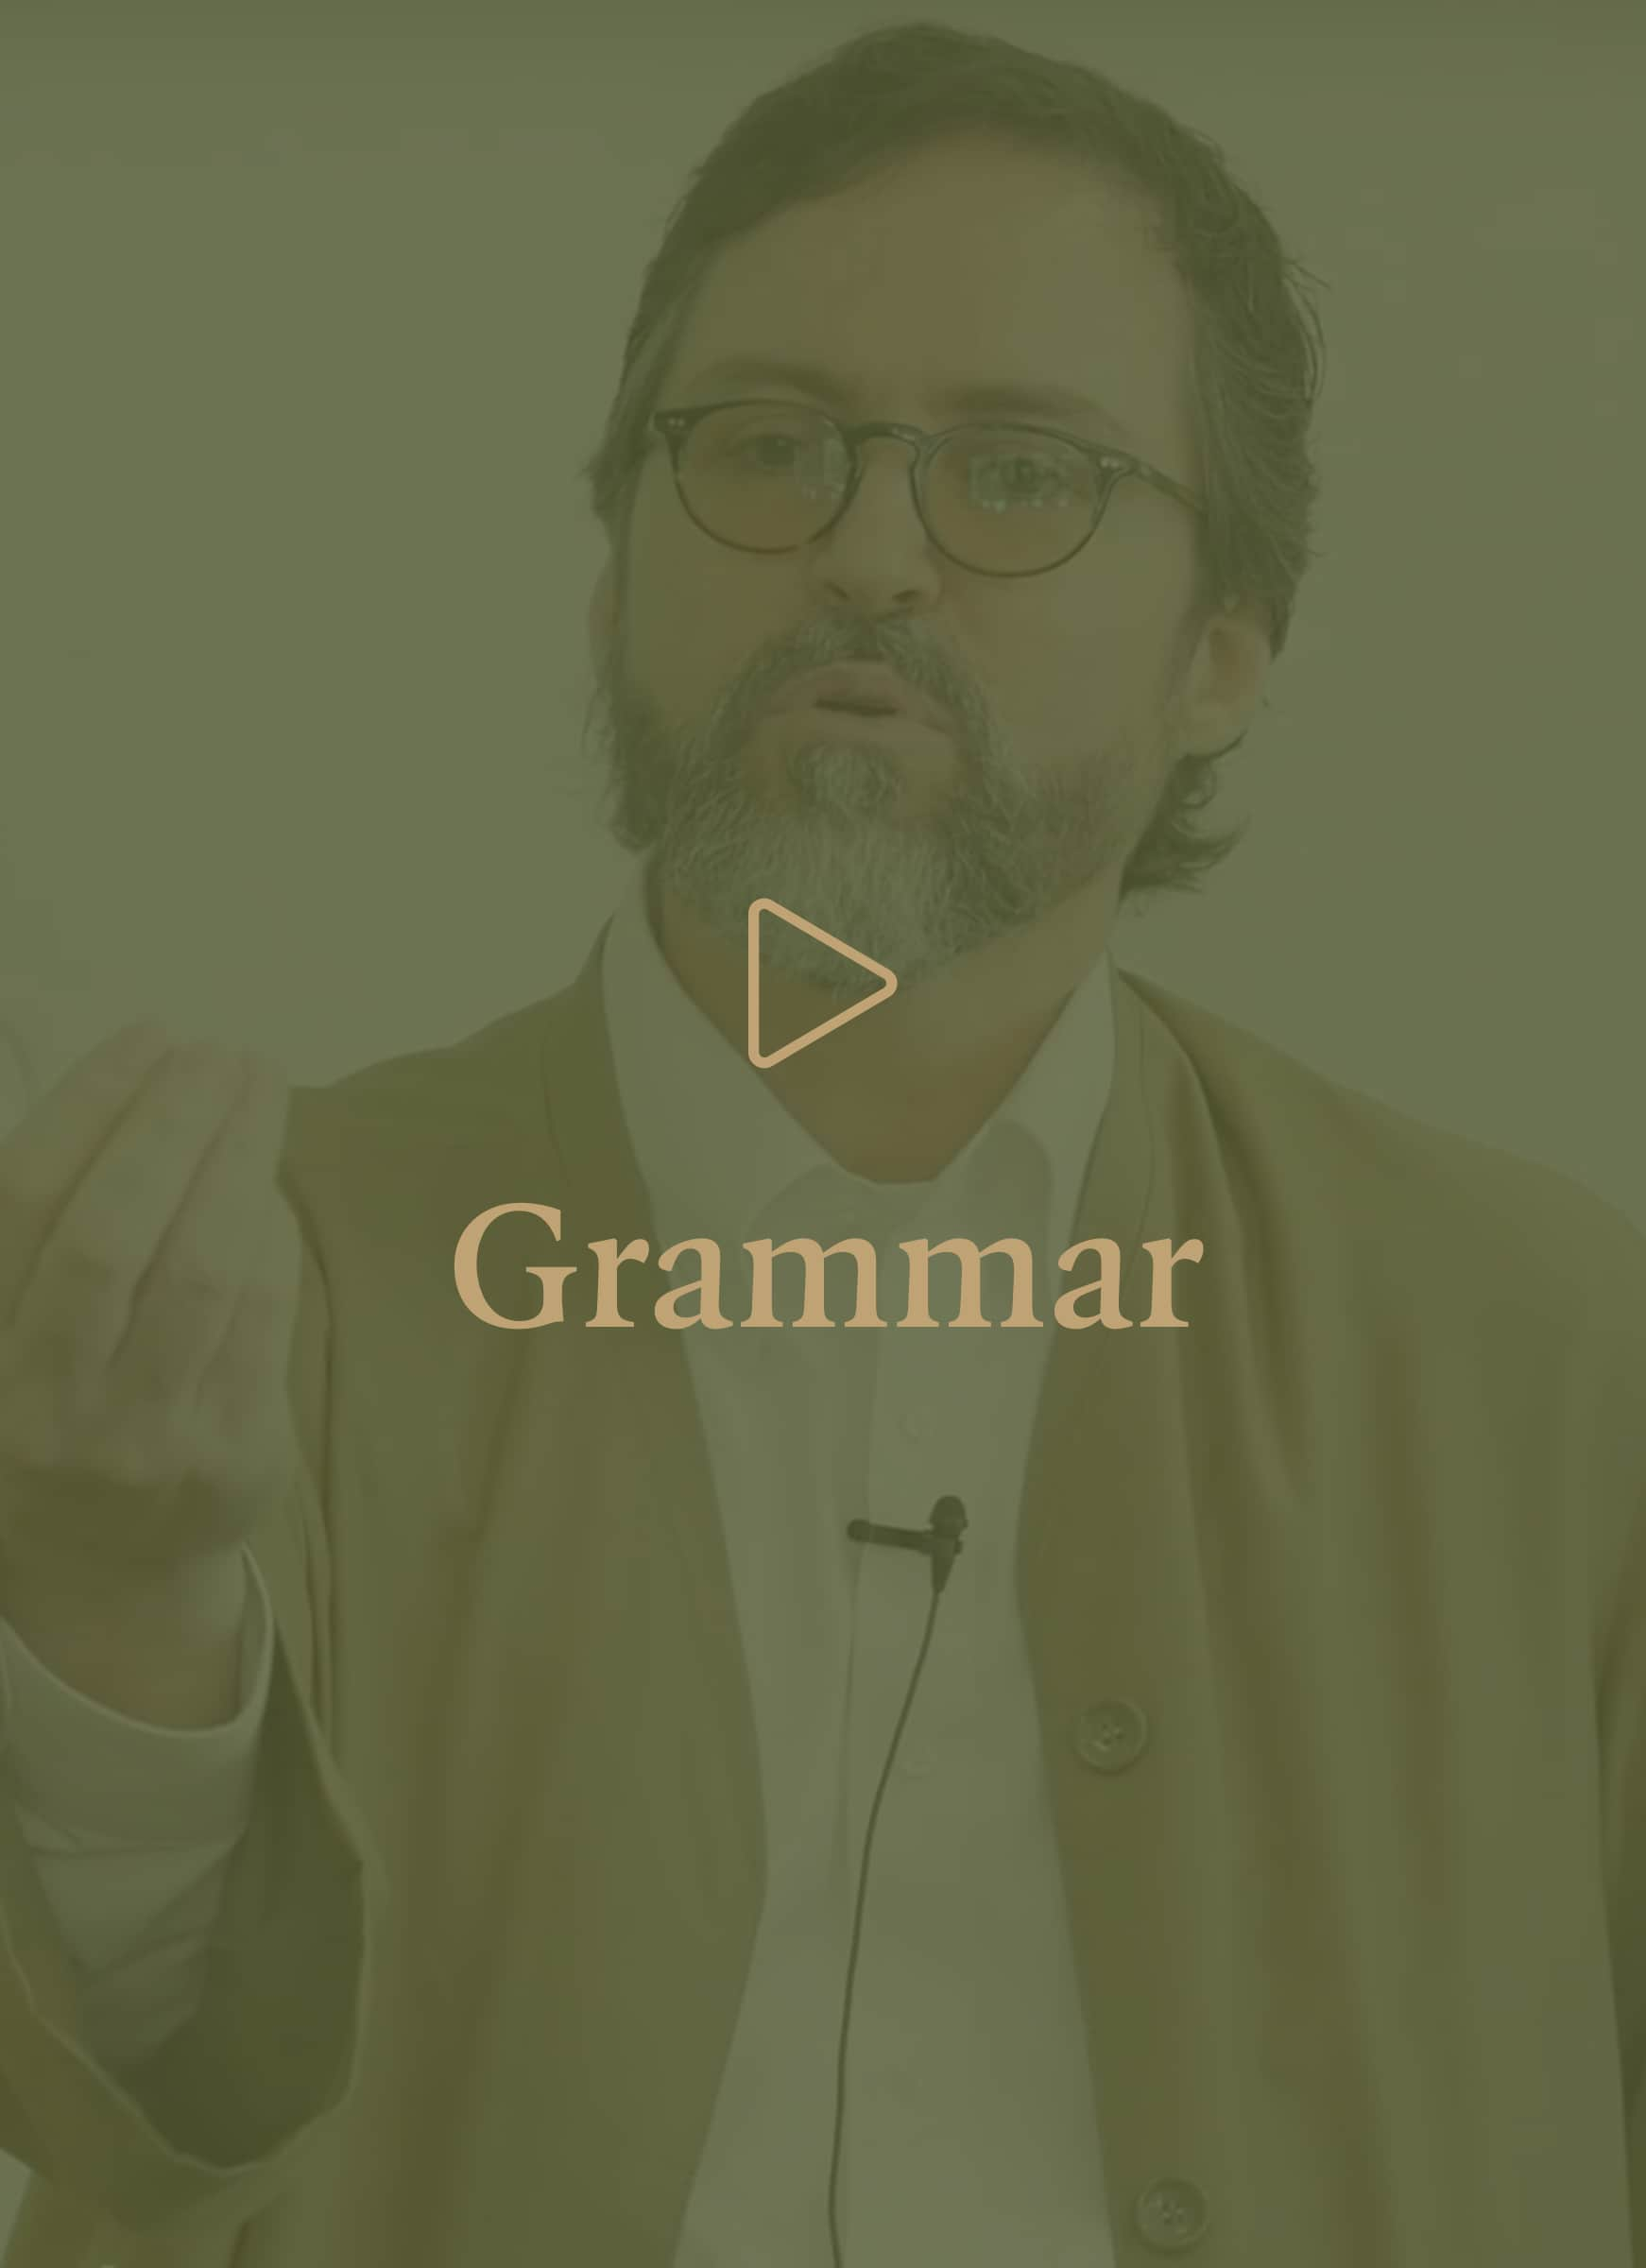 Hamza Yusuf image with overlay of play icon with Grammar title.